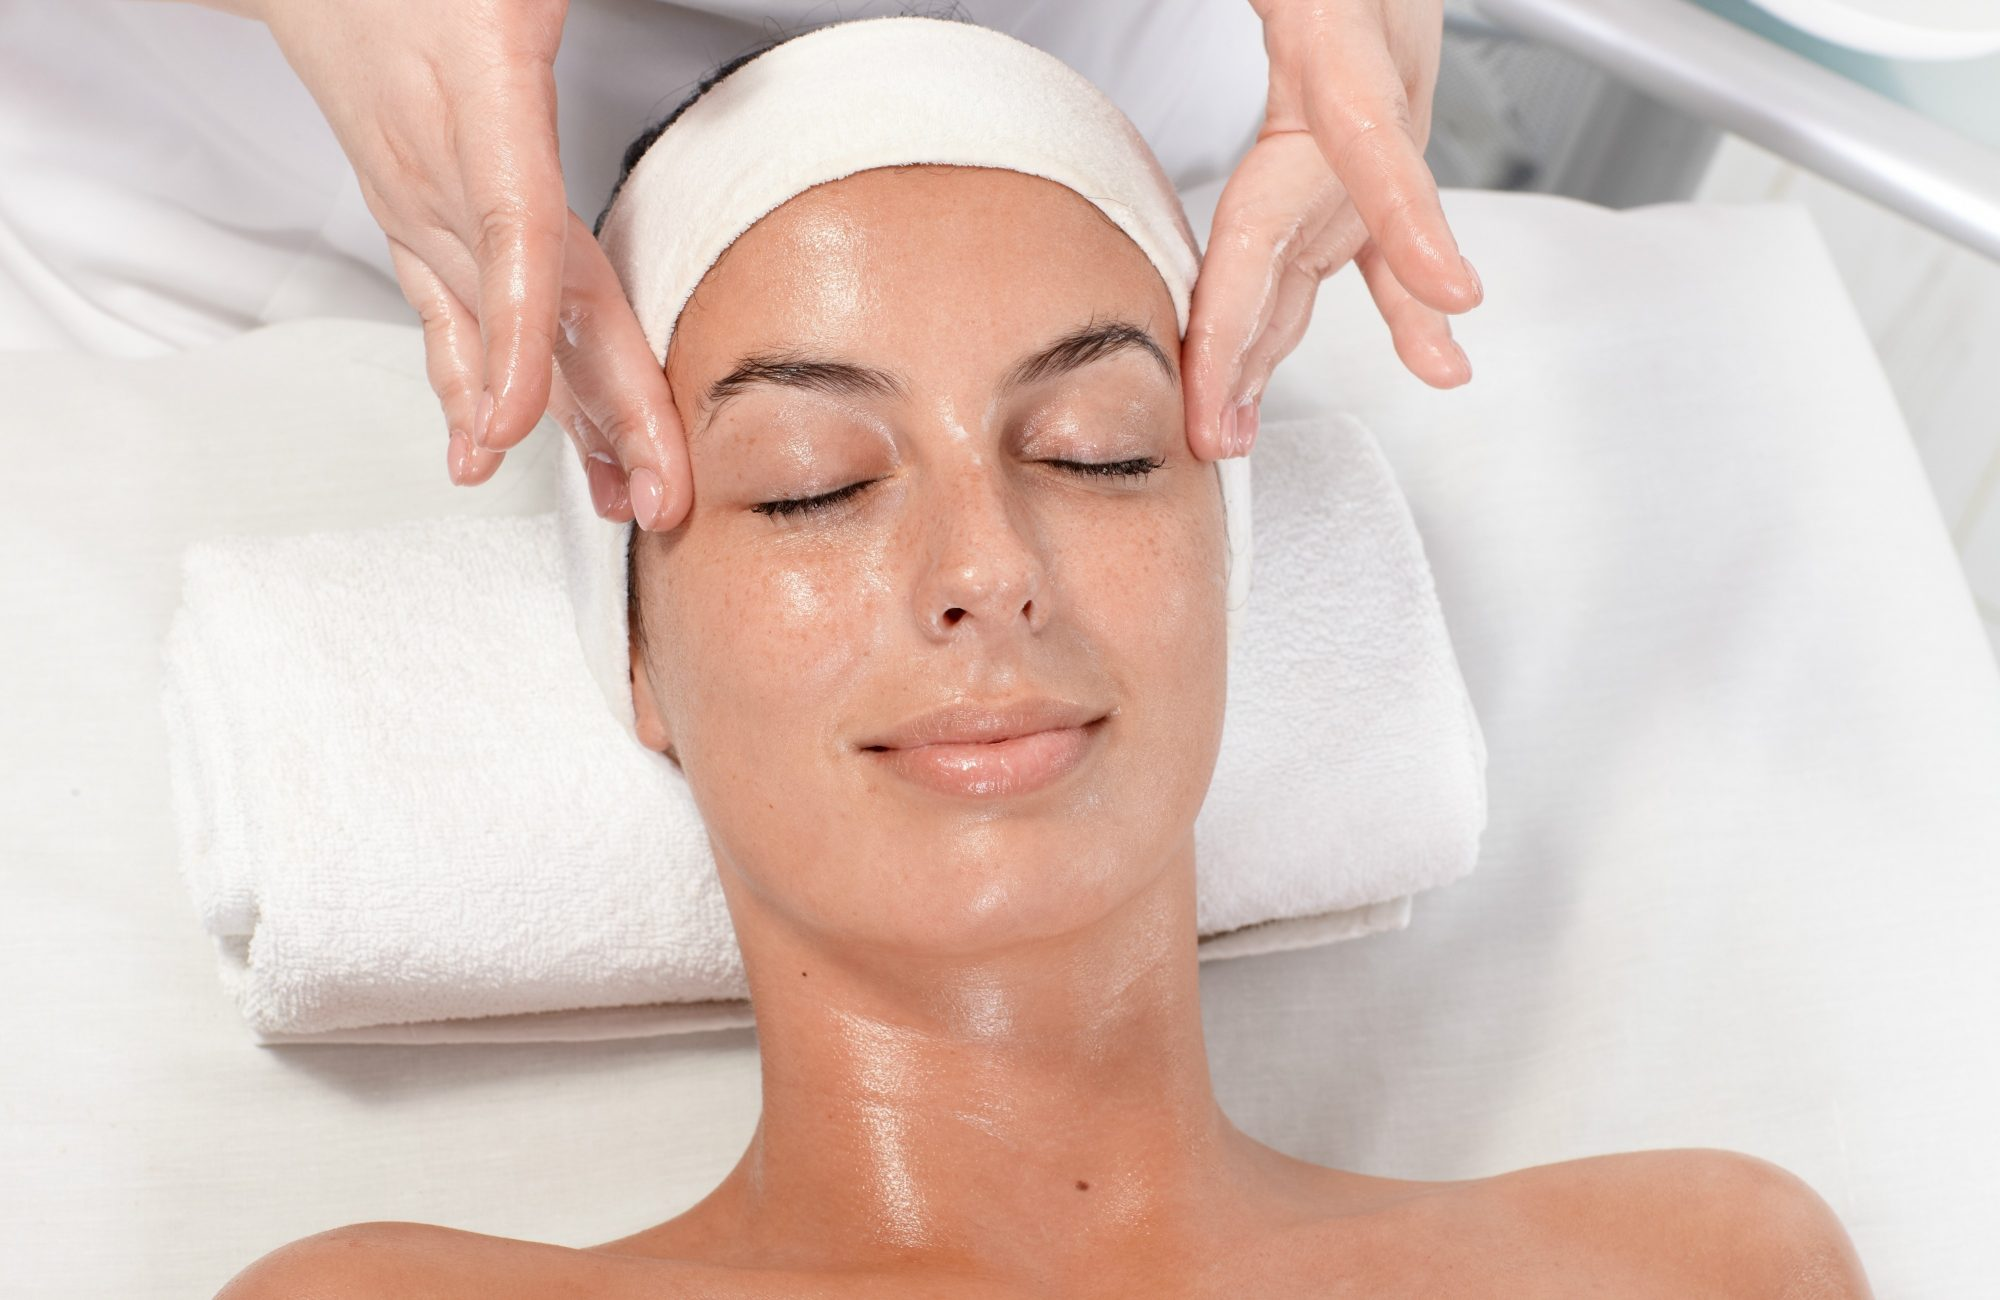 Let's Talk Facial Massages